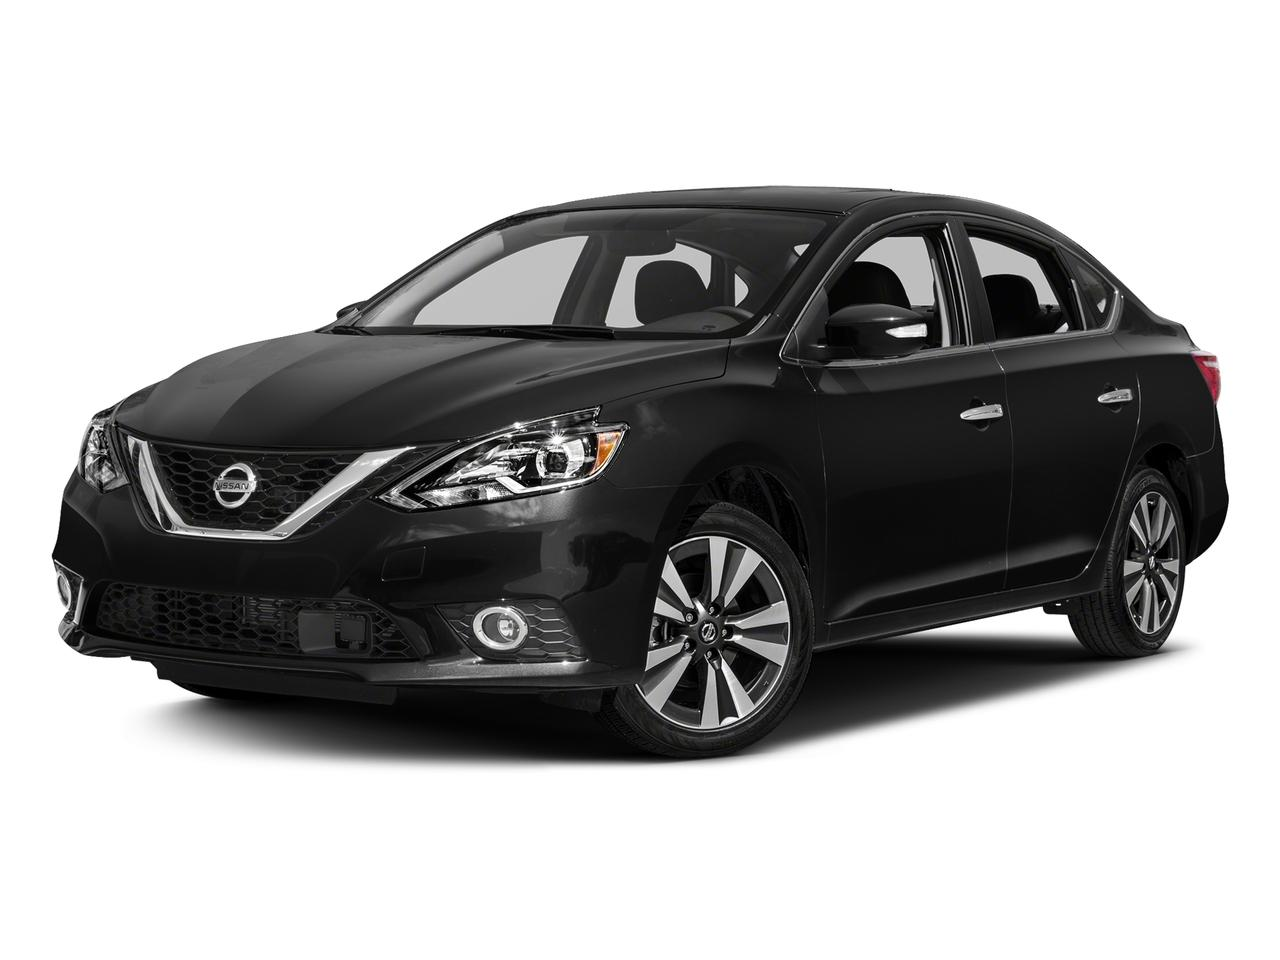 2018 Nissan Sentra Vehicle Photo in Annapolis, MD 21401